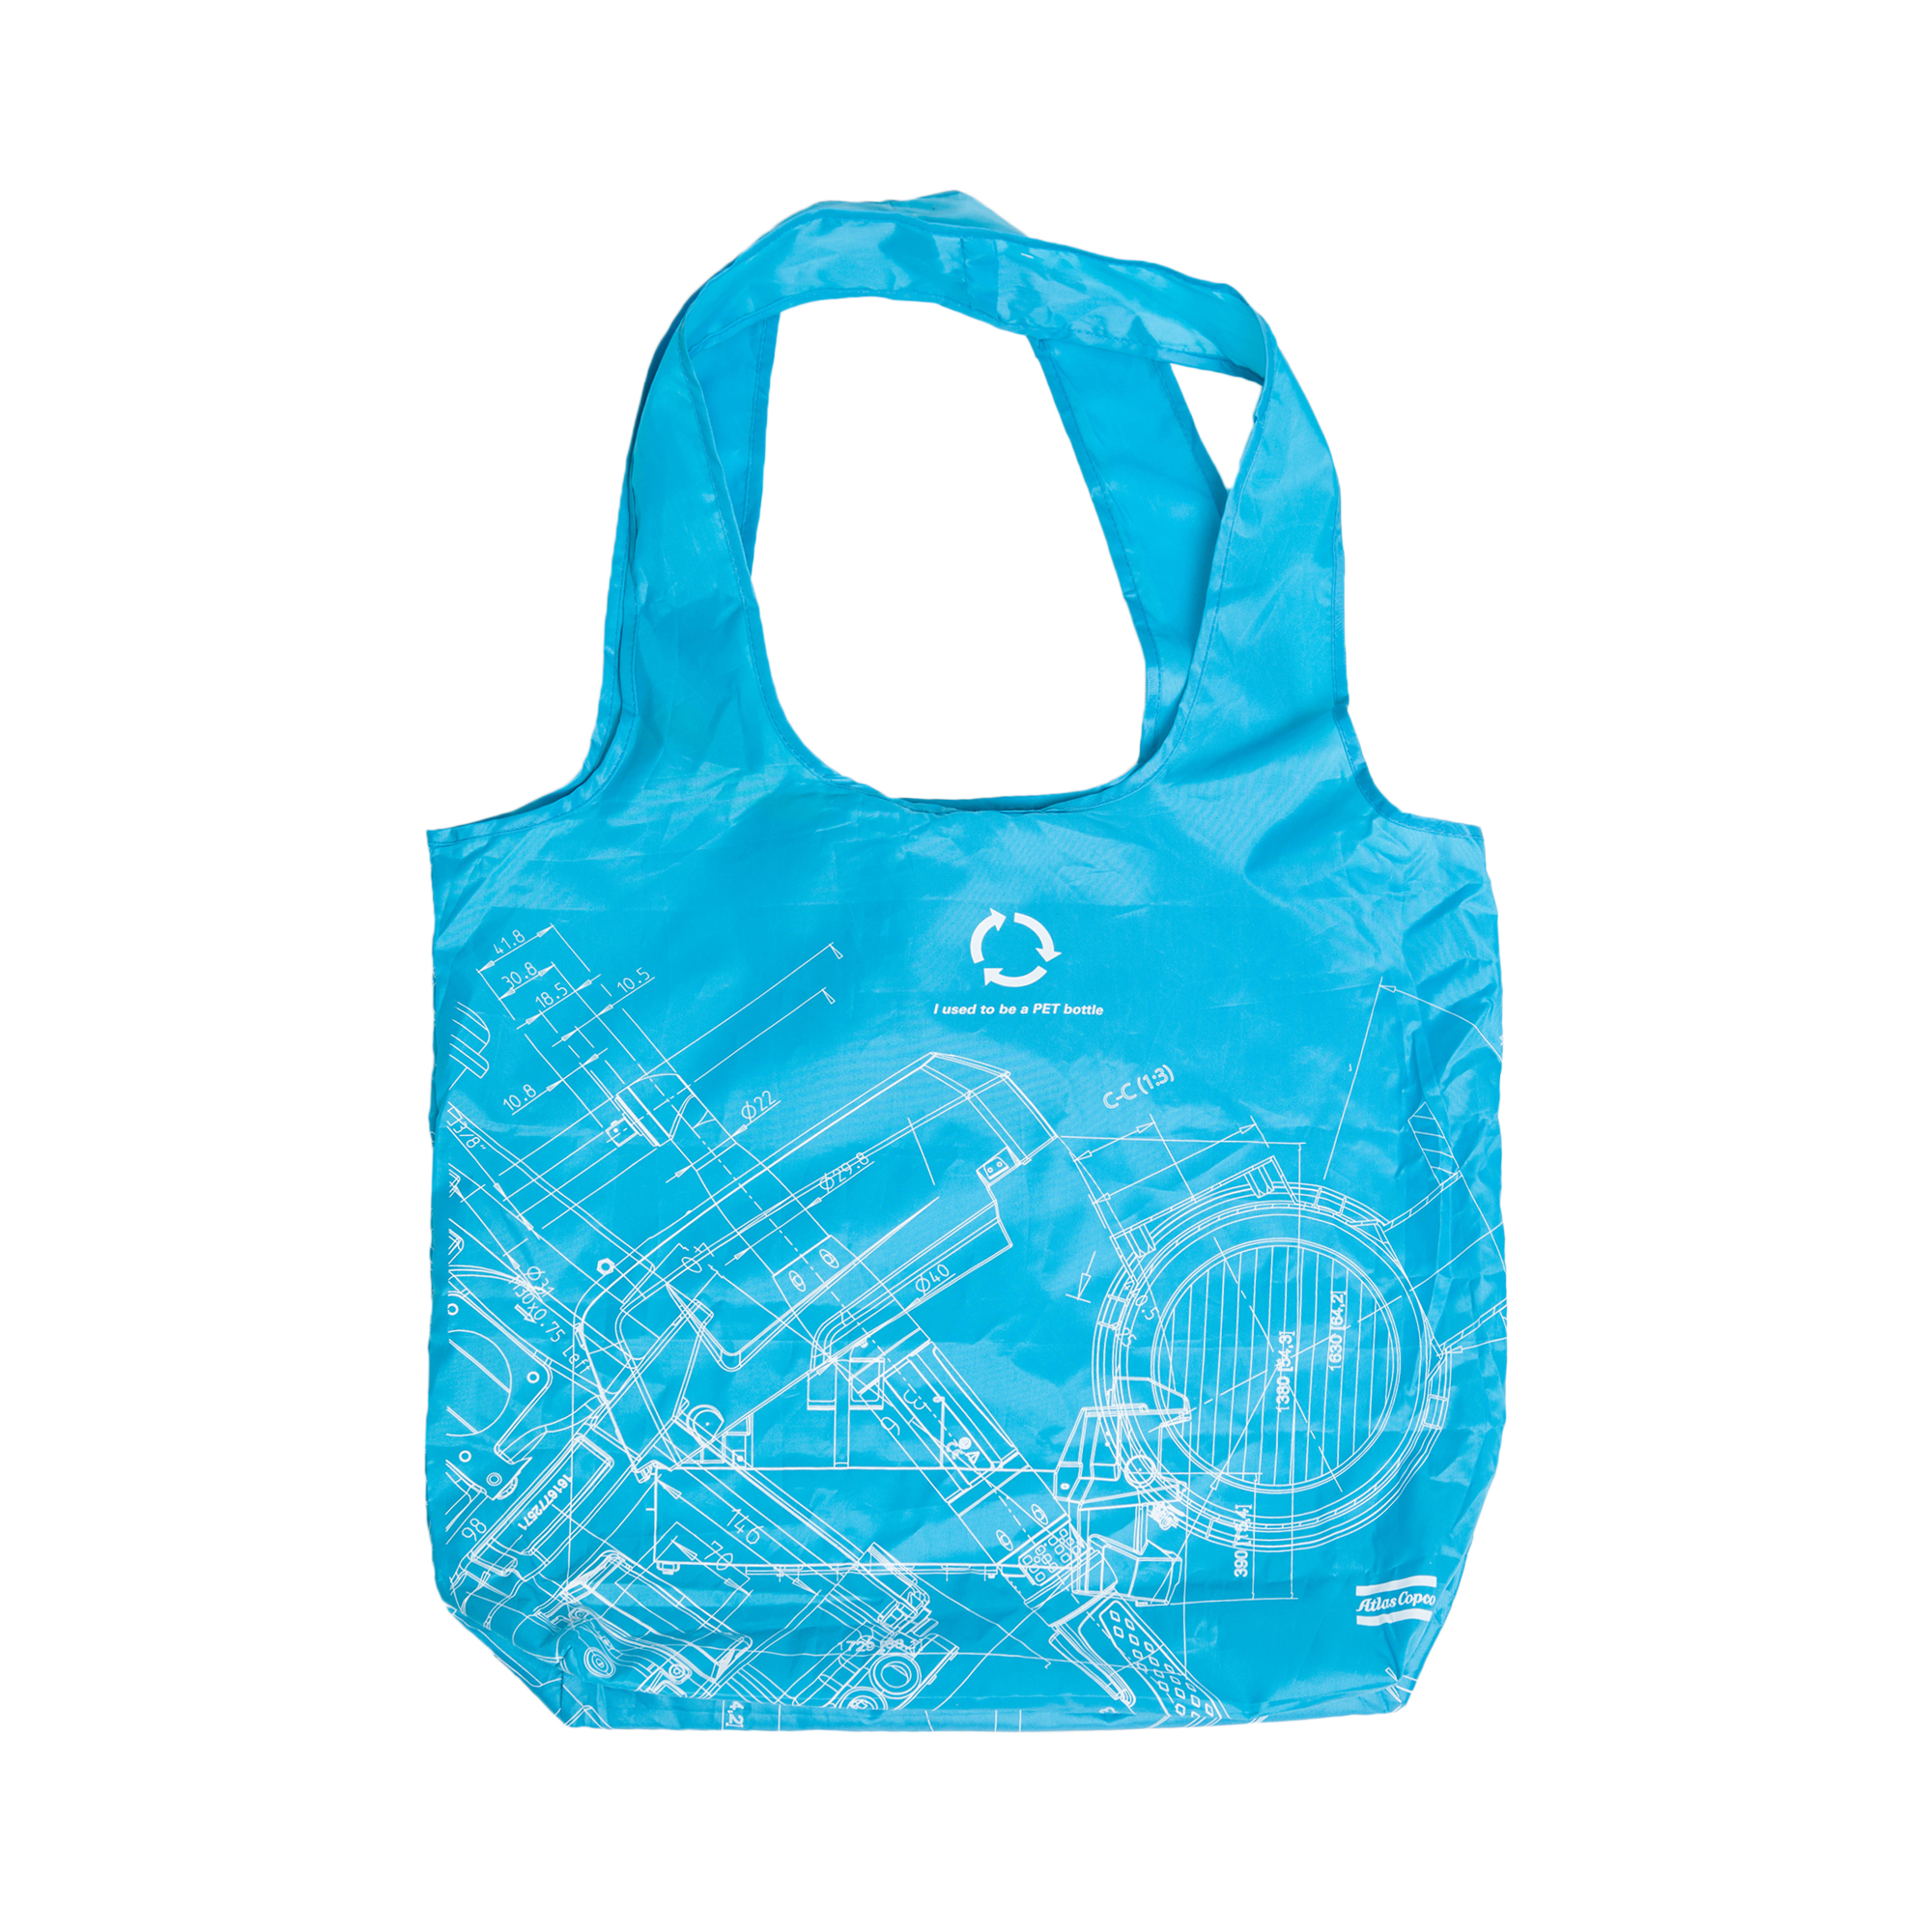 These foldable shopping bags are made from 100% recycled plastic bottles. They have a handy pouch stitched into the bag and will easily fit in your handbag, briefcase or coat pocket.